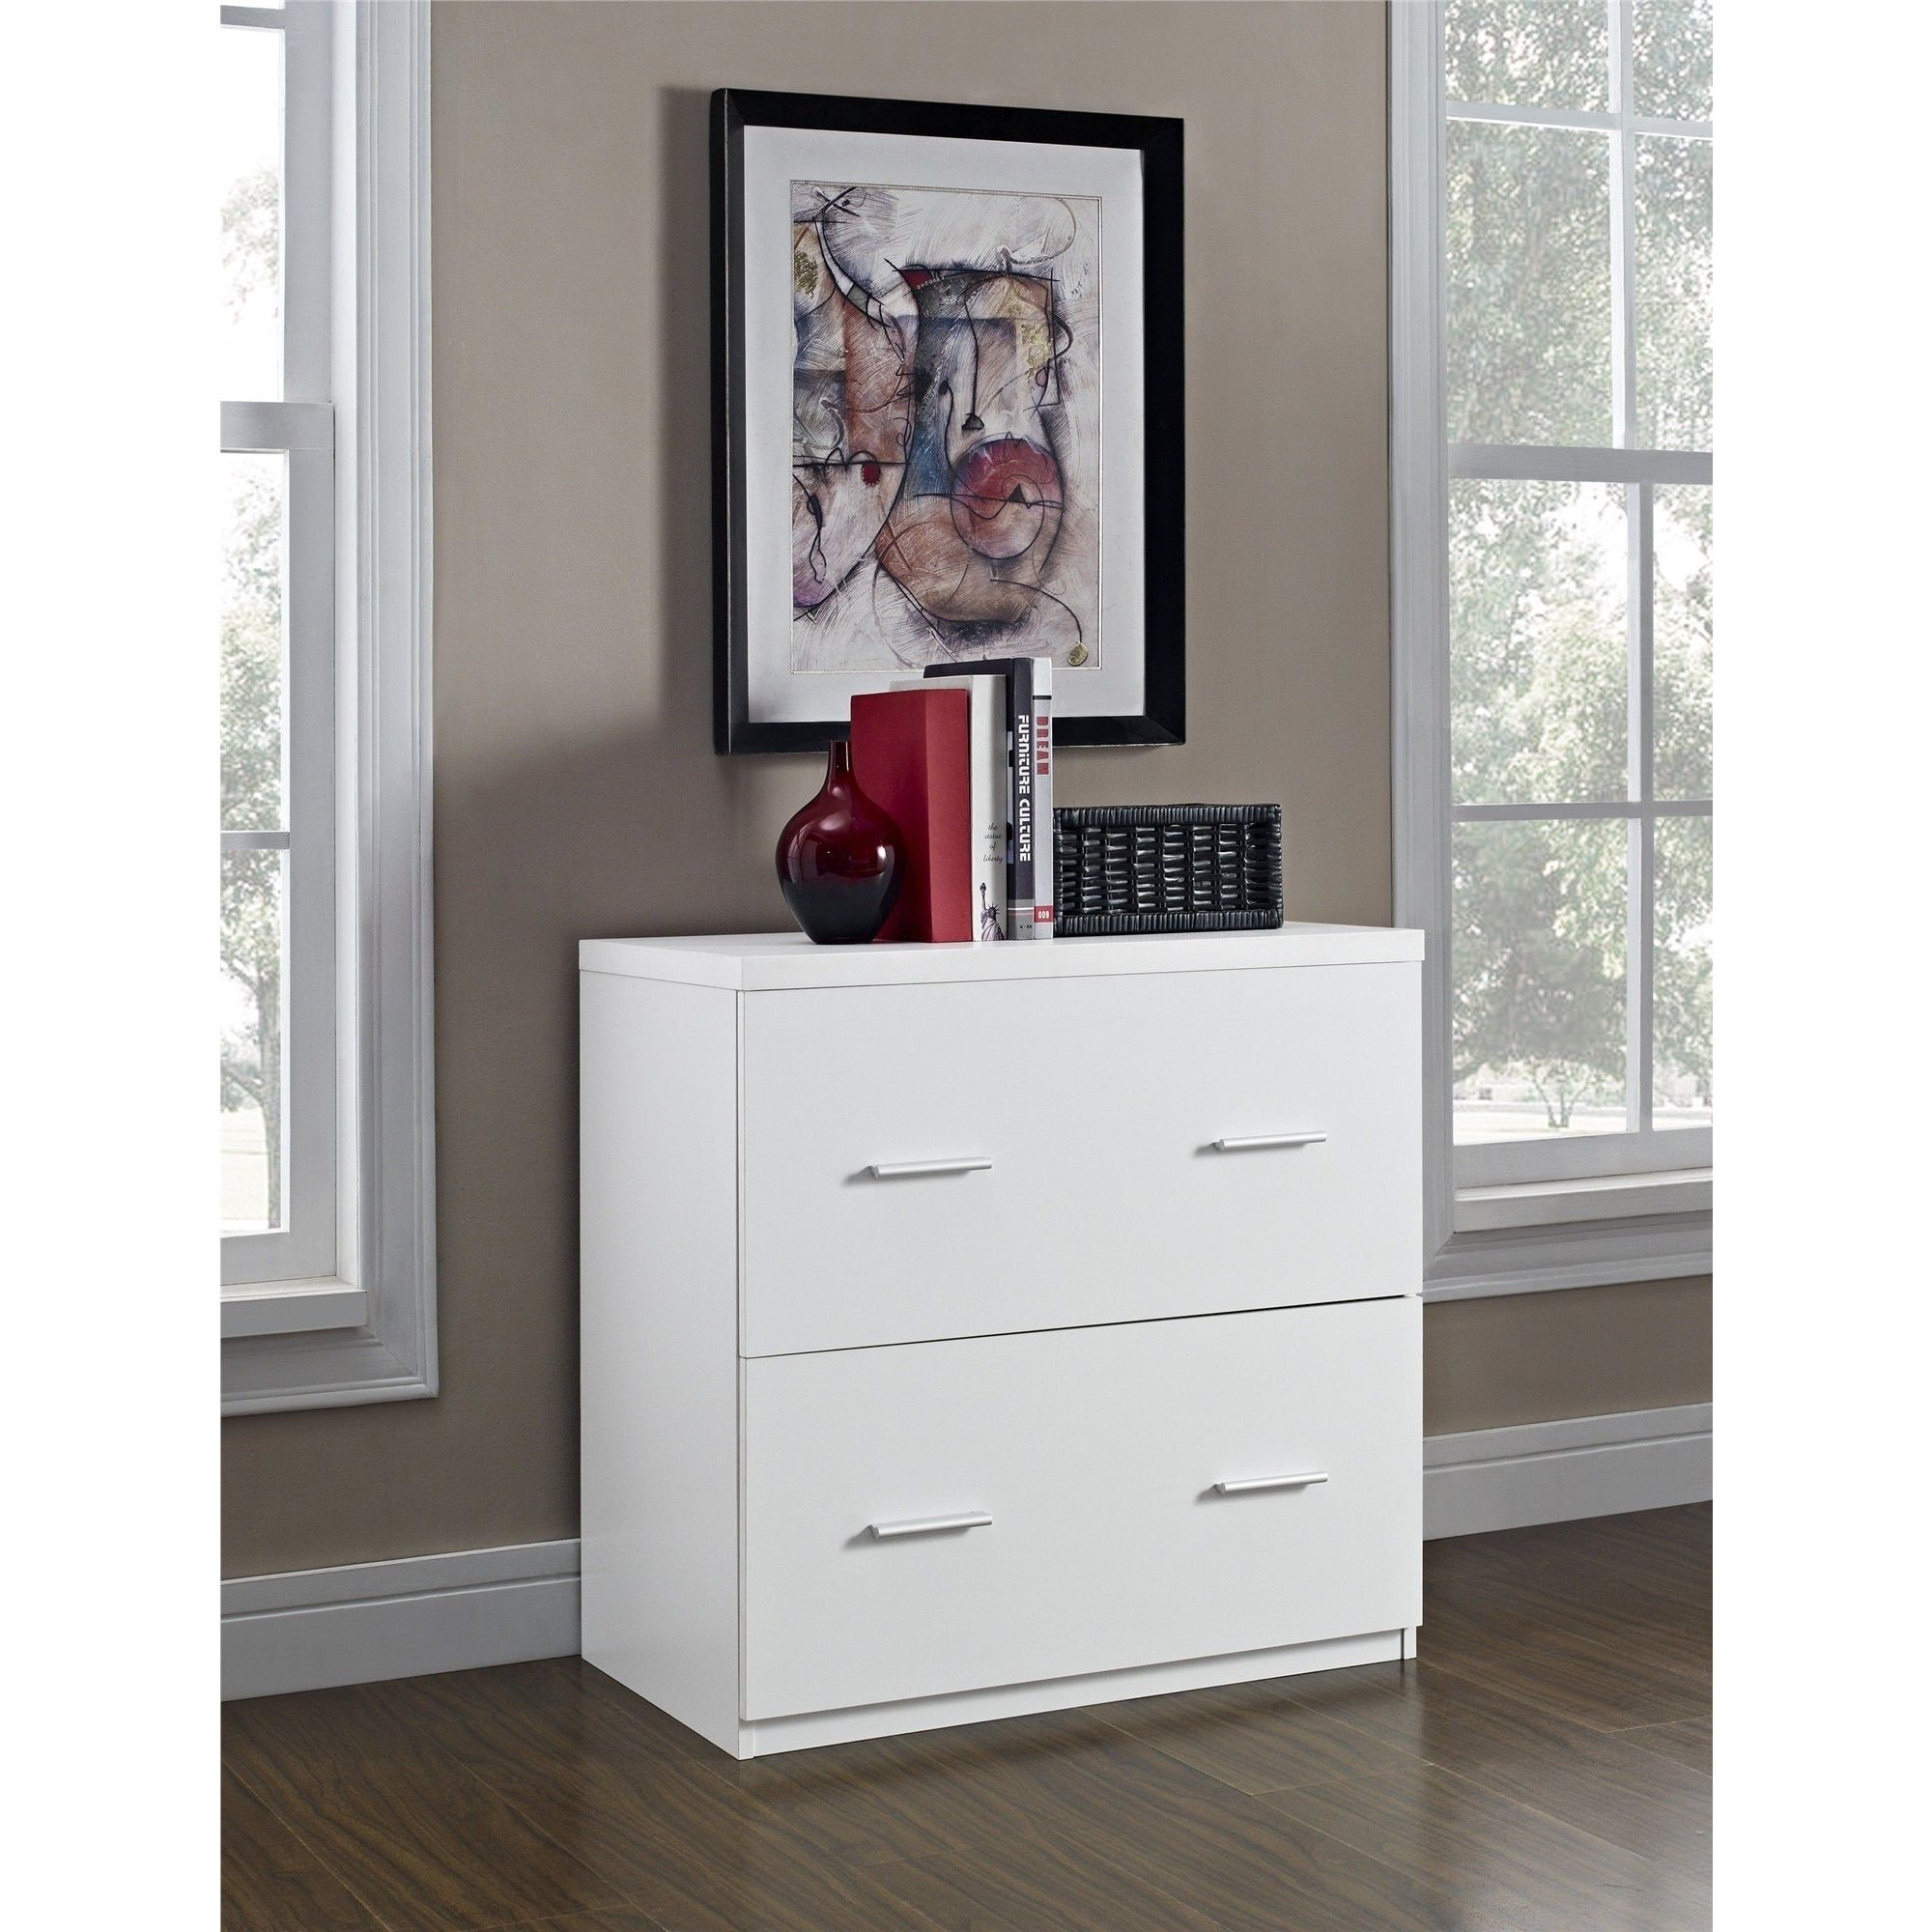 Awesome Overstock Office Furniture Fresh